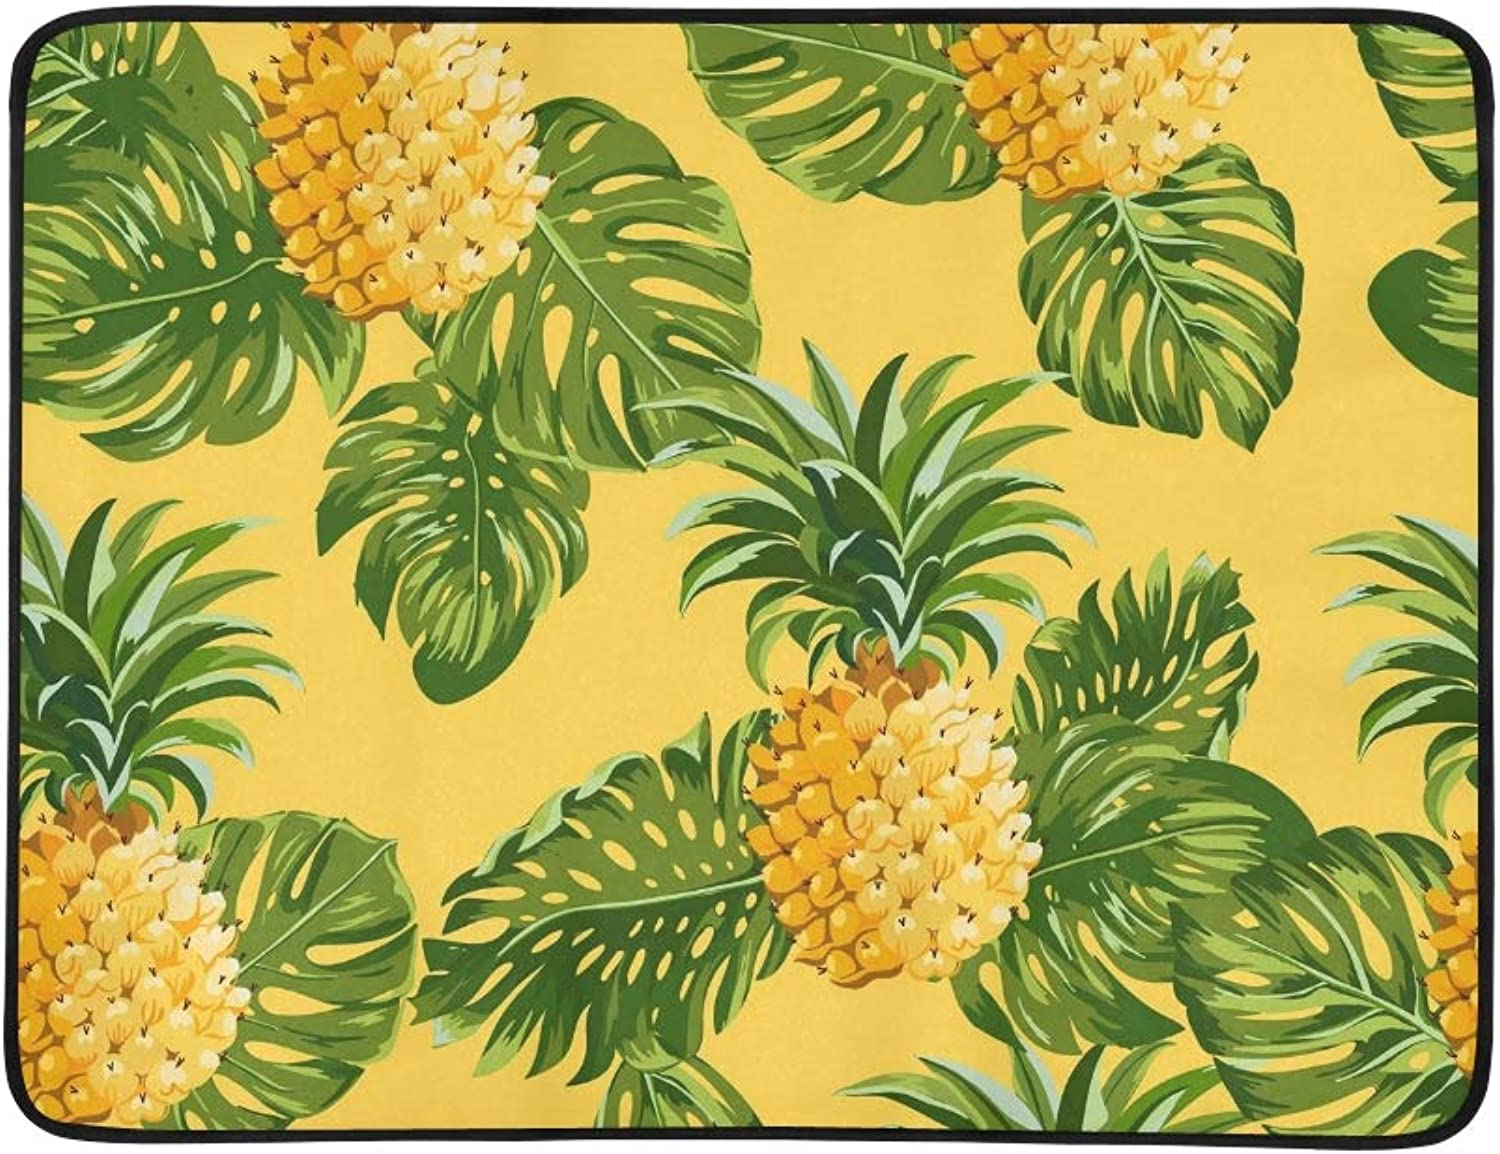 Pineapples Tropical Leaves Vintage Portable and Foldable Blanket Mat 60x78 Inch Handy Mat for Camping Picnic Beach Indoor Outdoor Travel